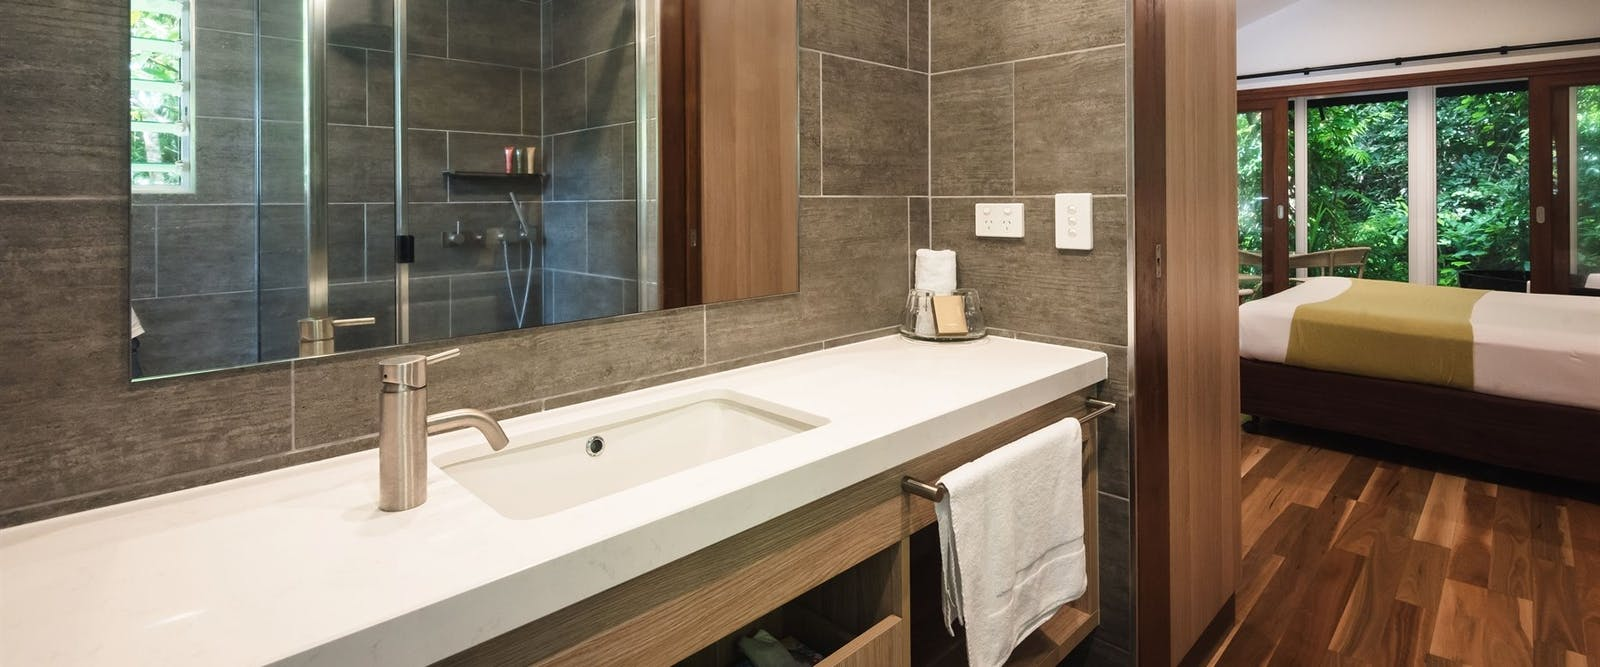 Guest bathroom, Daintree Eco Lodge and Spa